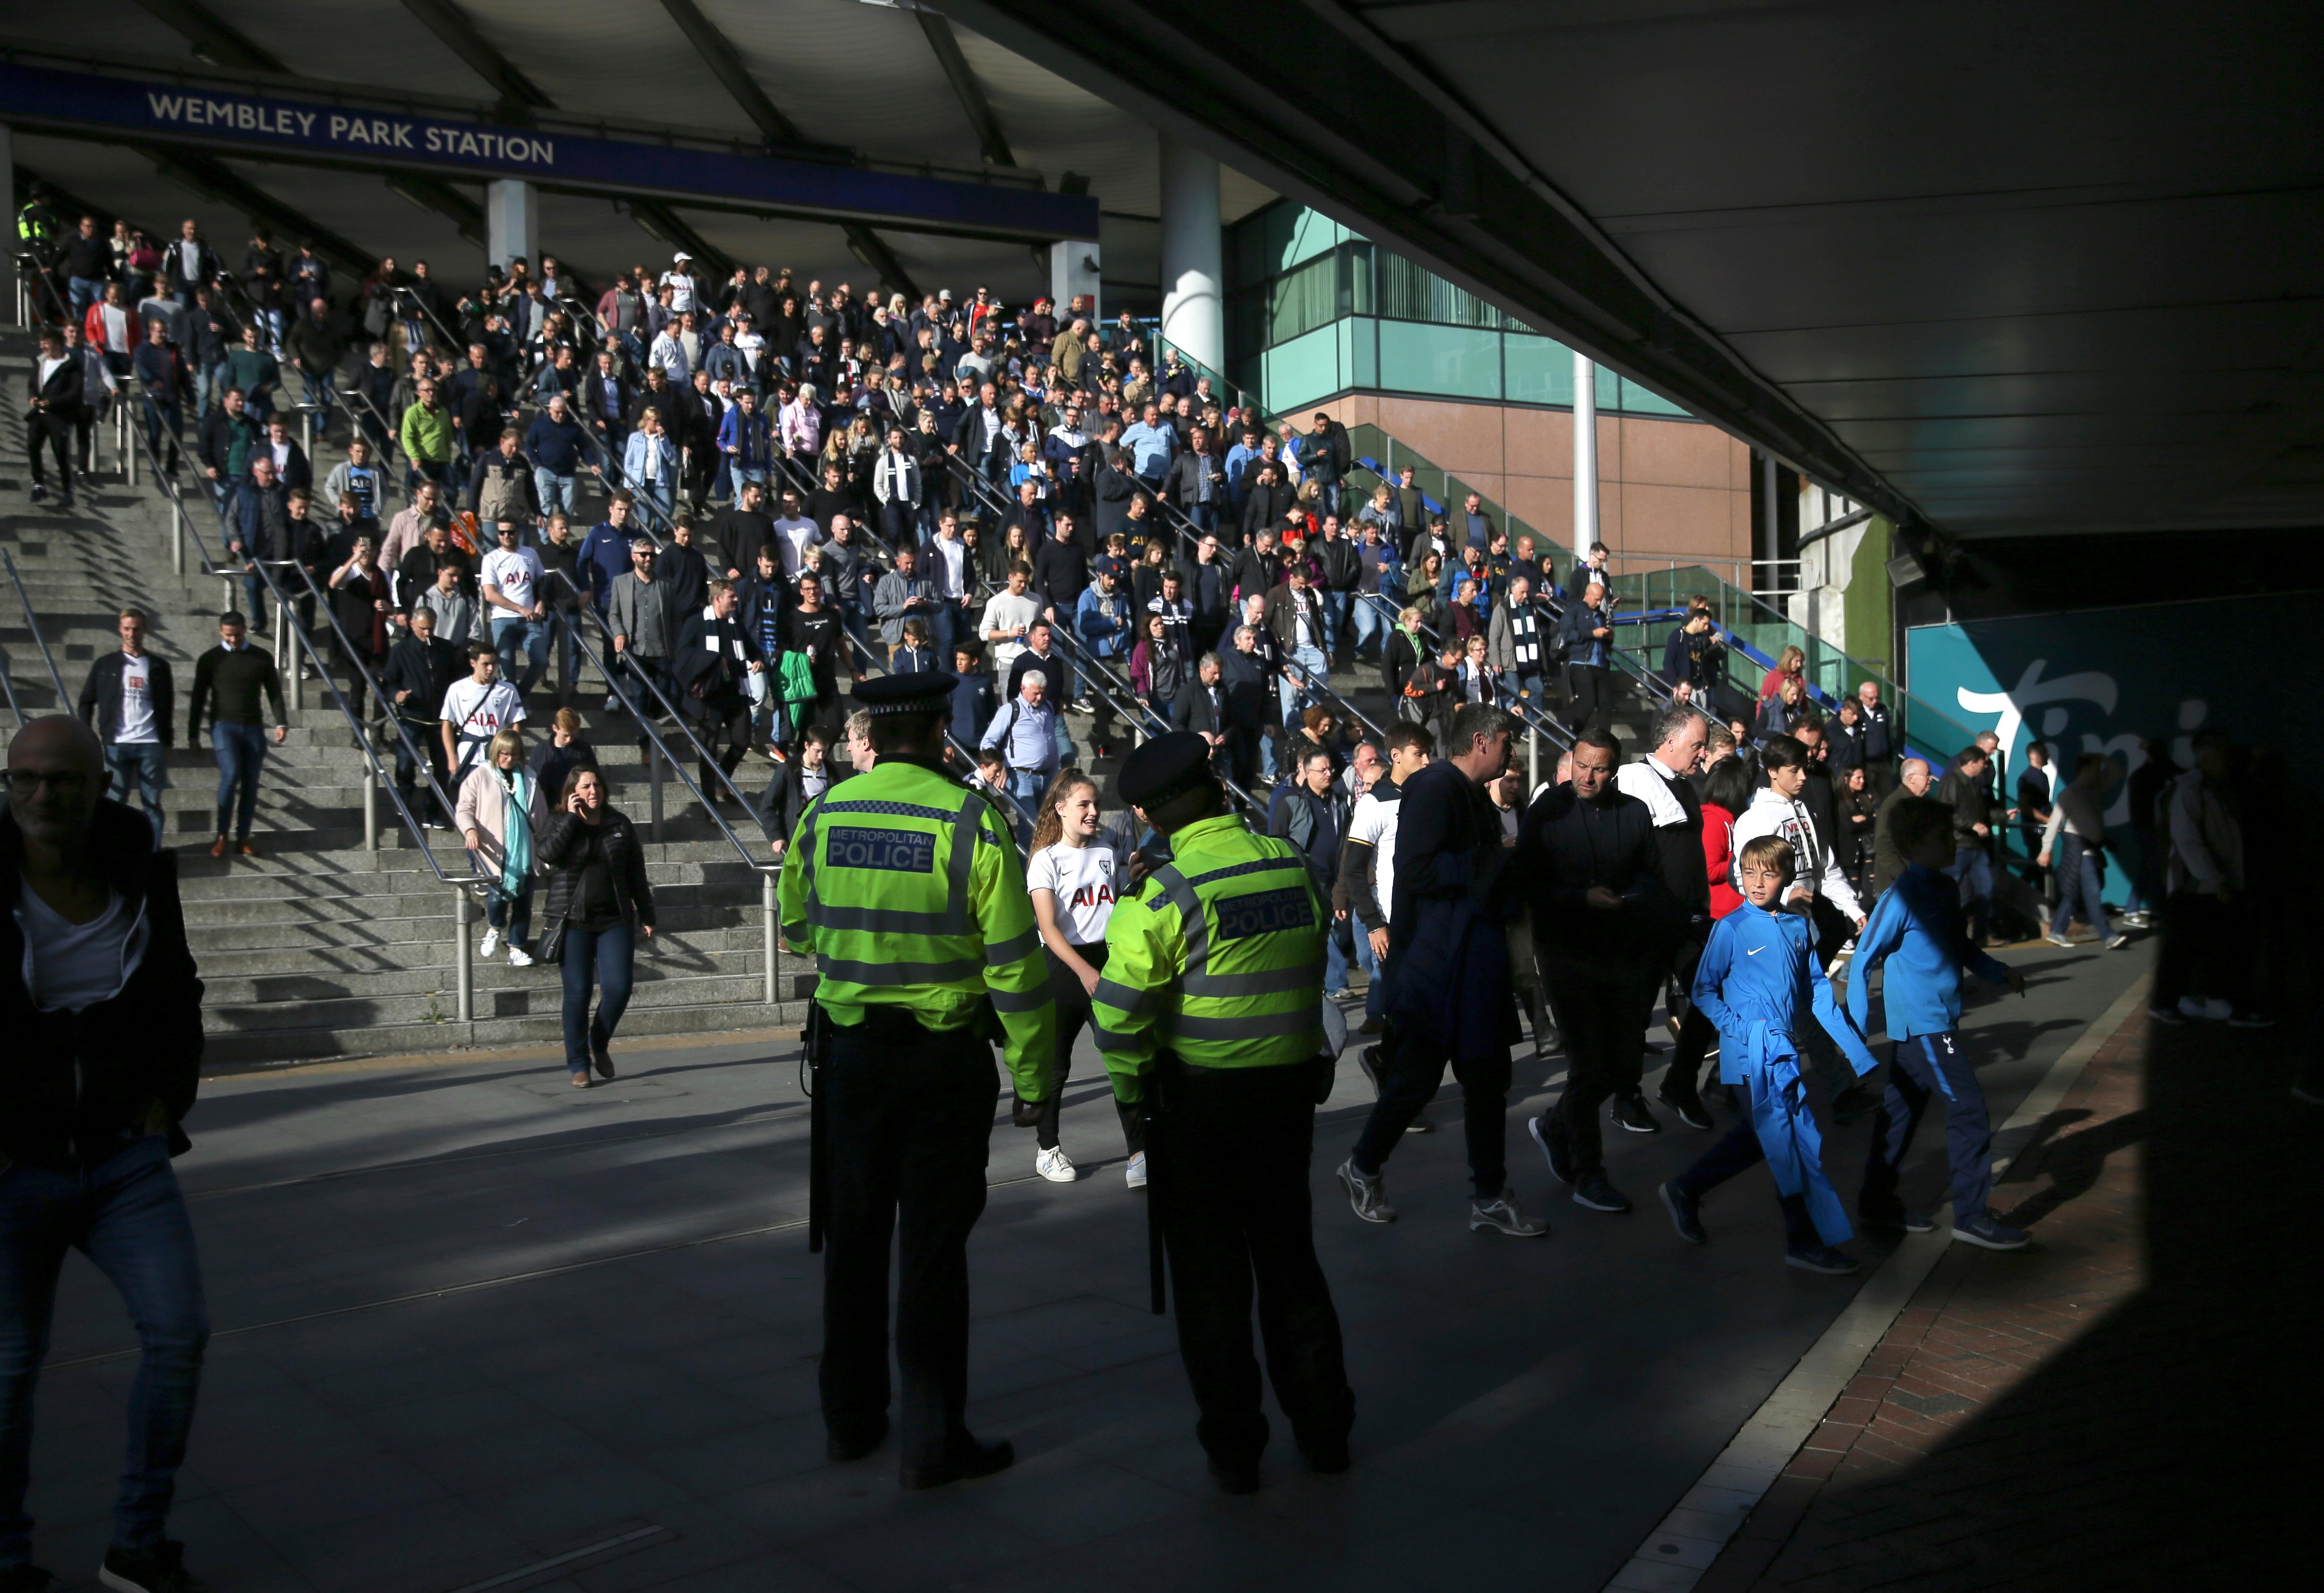 Police observe the crowds outside Wembley Park Station ahead of a soccer match, following a terrorist attack Friday on a train at Parsons Green Station, in London, Saturday Sept. 16, 2017.  A bucket wrapped in an insulated bag caught fire on a packed London subway train Friday, sending commuters running for safety at the height of the morning rush hour. (AP Photo/Tim Ireland)